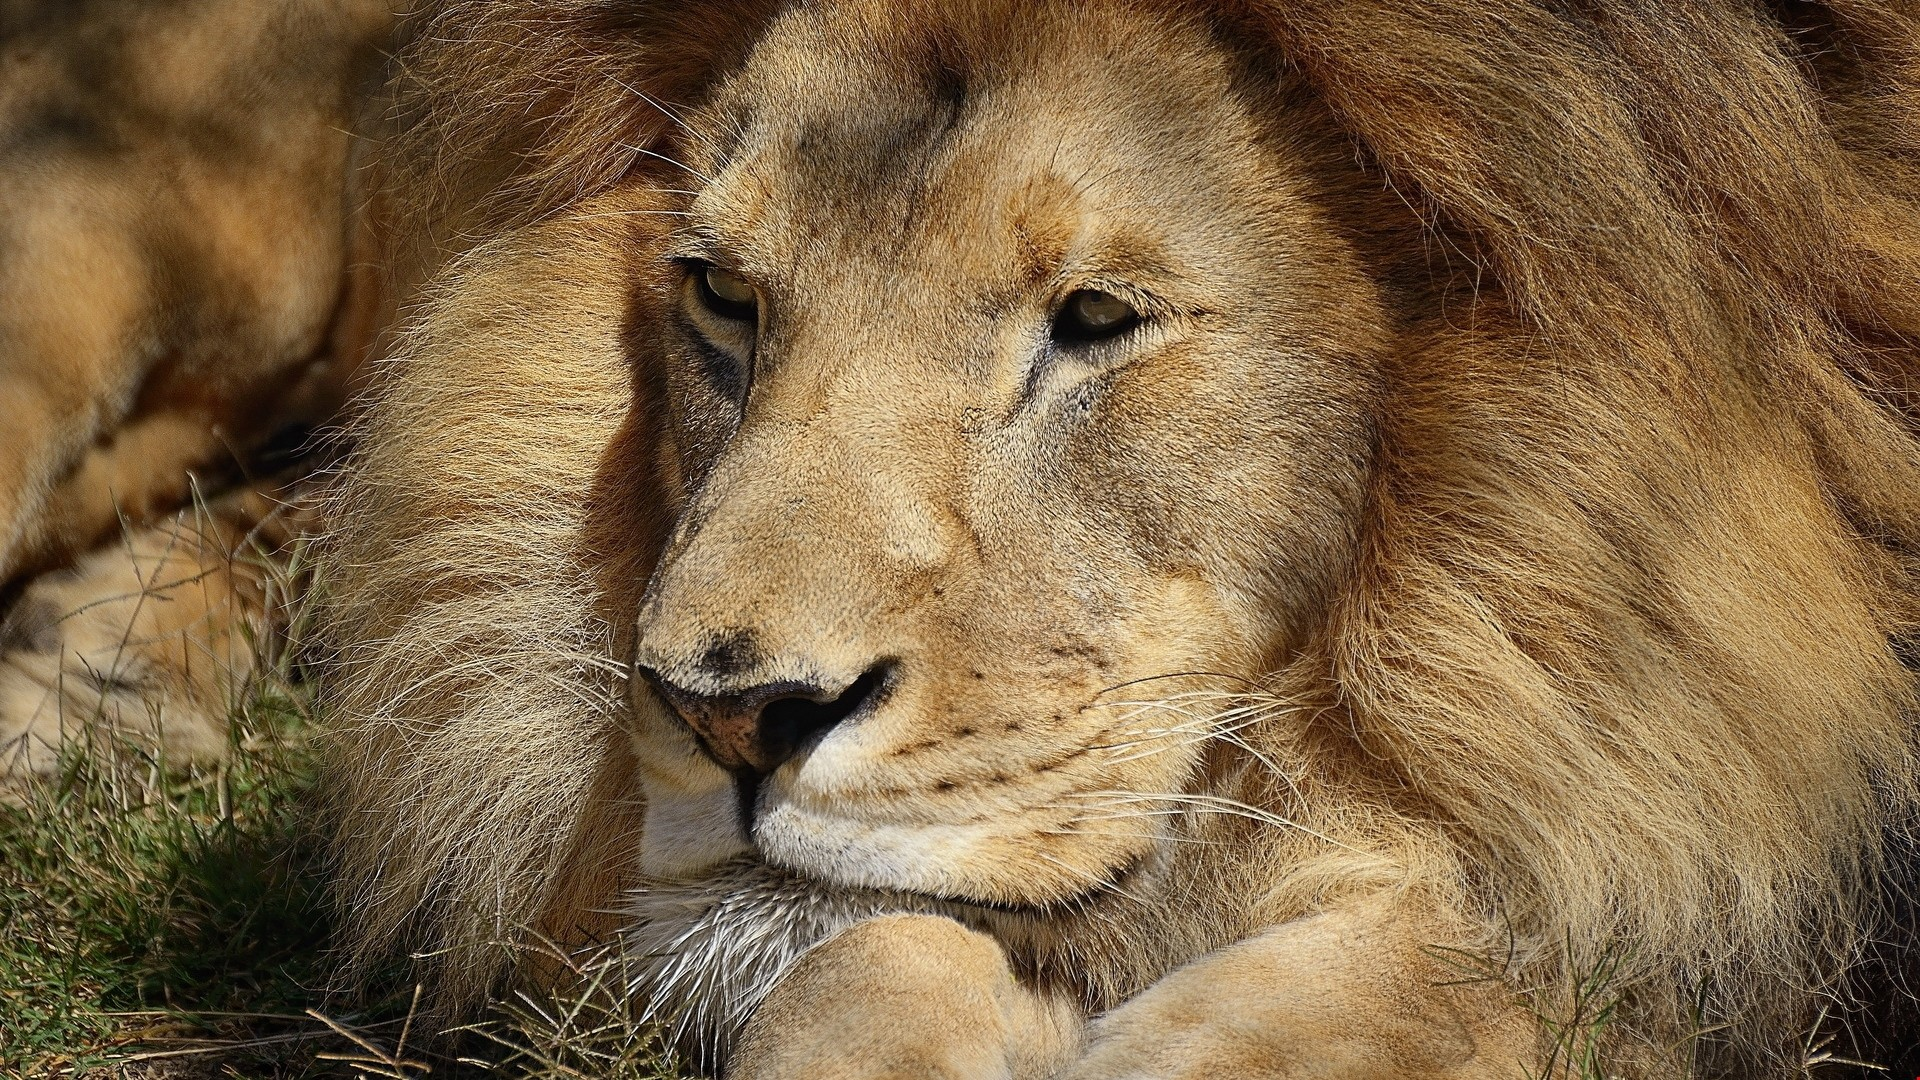 Res: 1920x1080, Download 1k lion, face, big cat - Animals Wallpapers HD